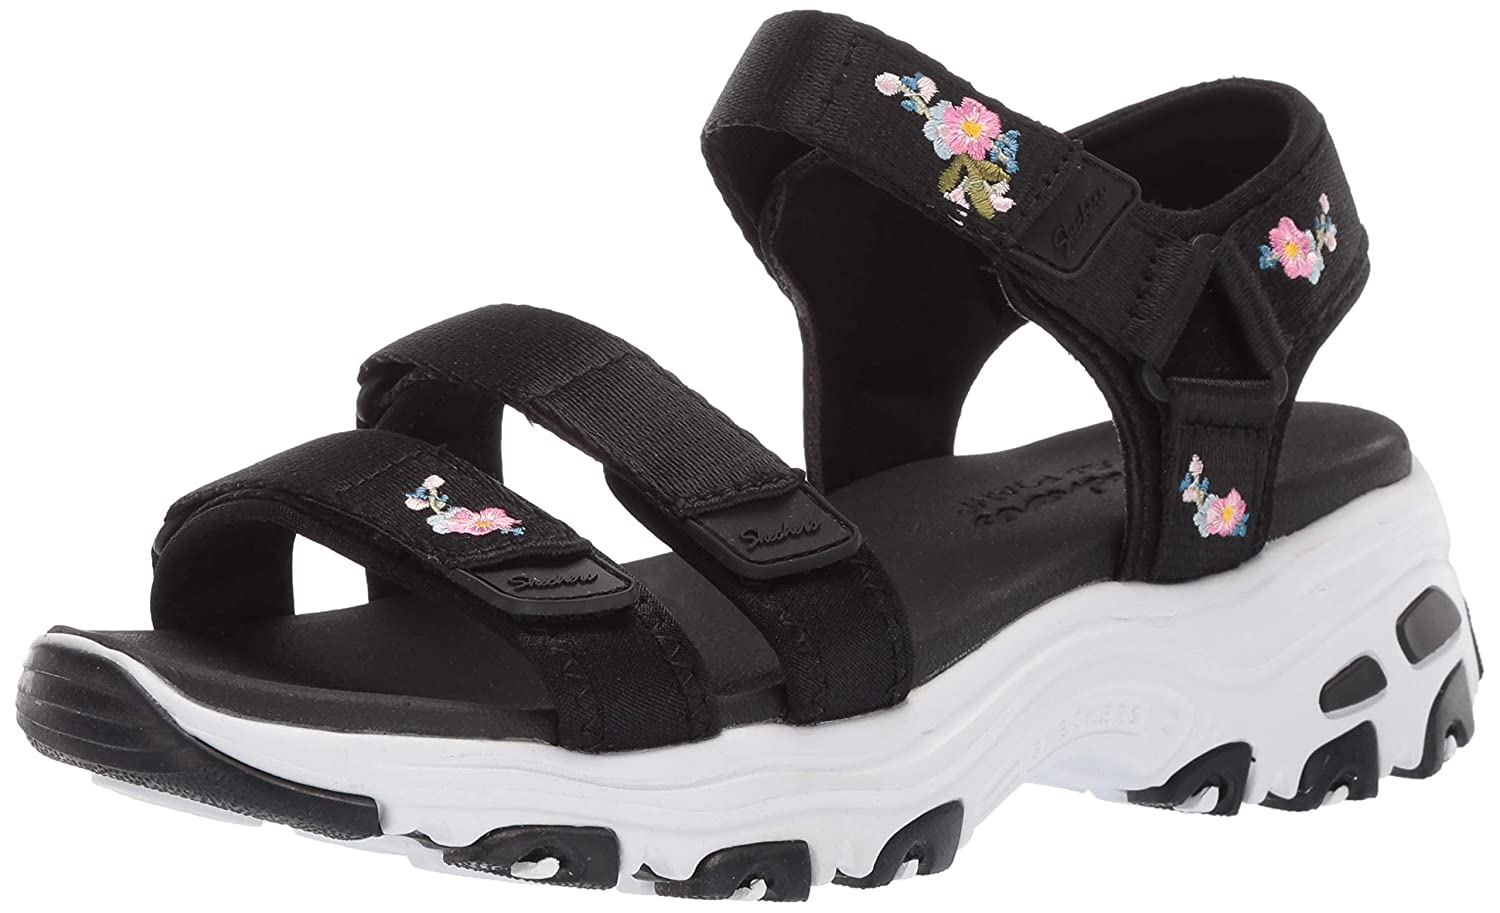 Skechers Womens DLites-Awesome Blossom-Floral Embroidered Quarter Strap Sandal Sport, Black/Multi 6 M US